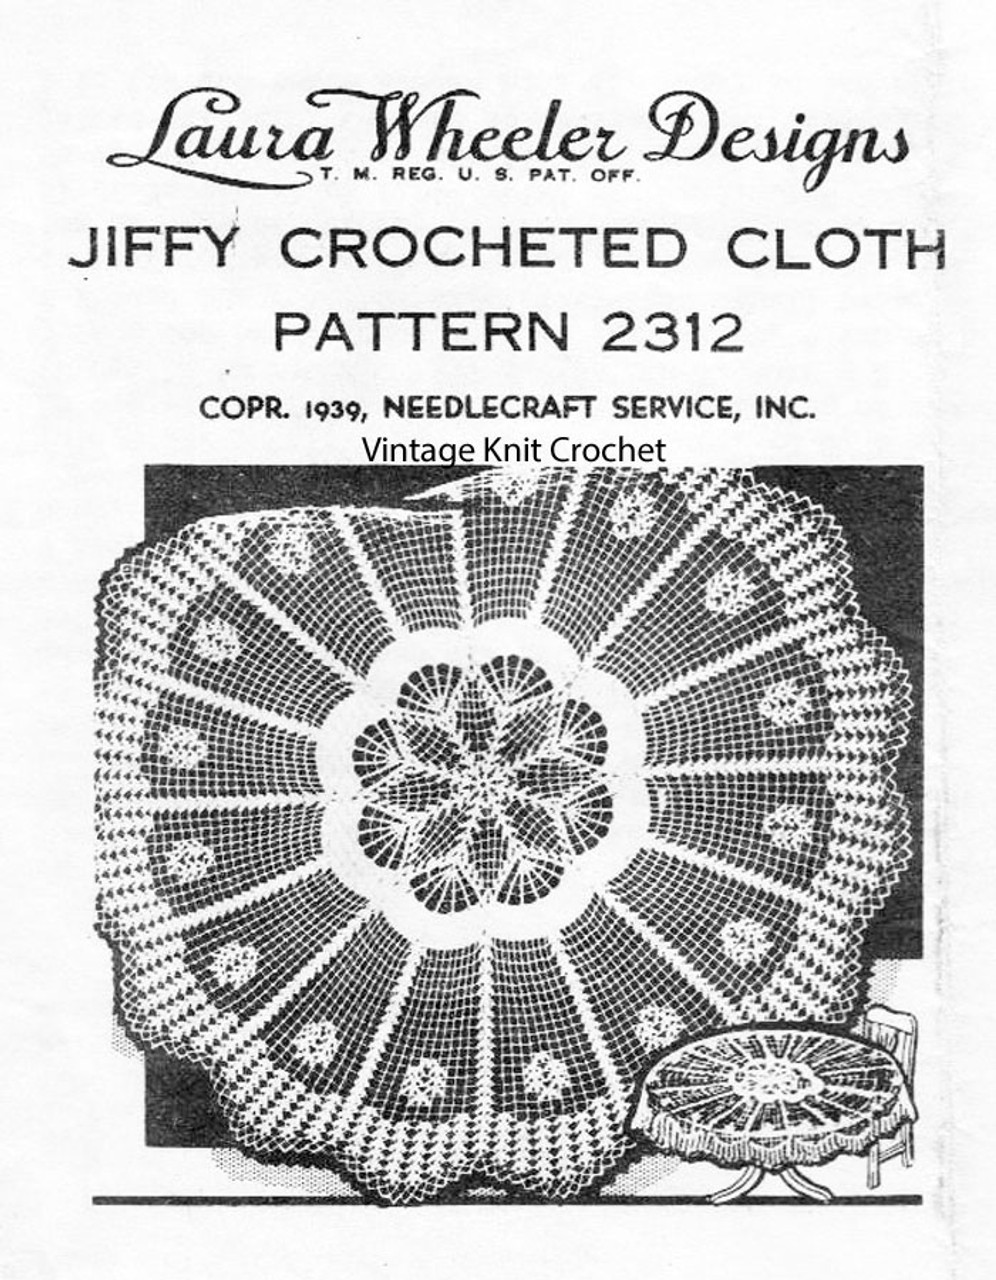 Round crochet tablecloth pattern Design 2312